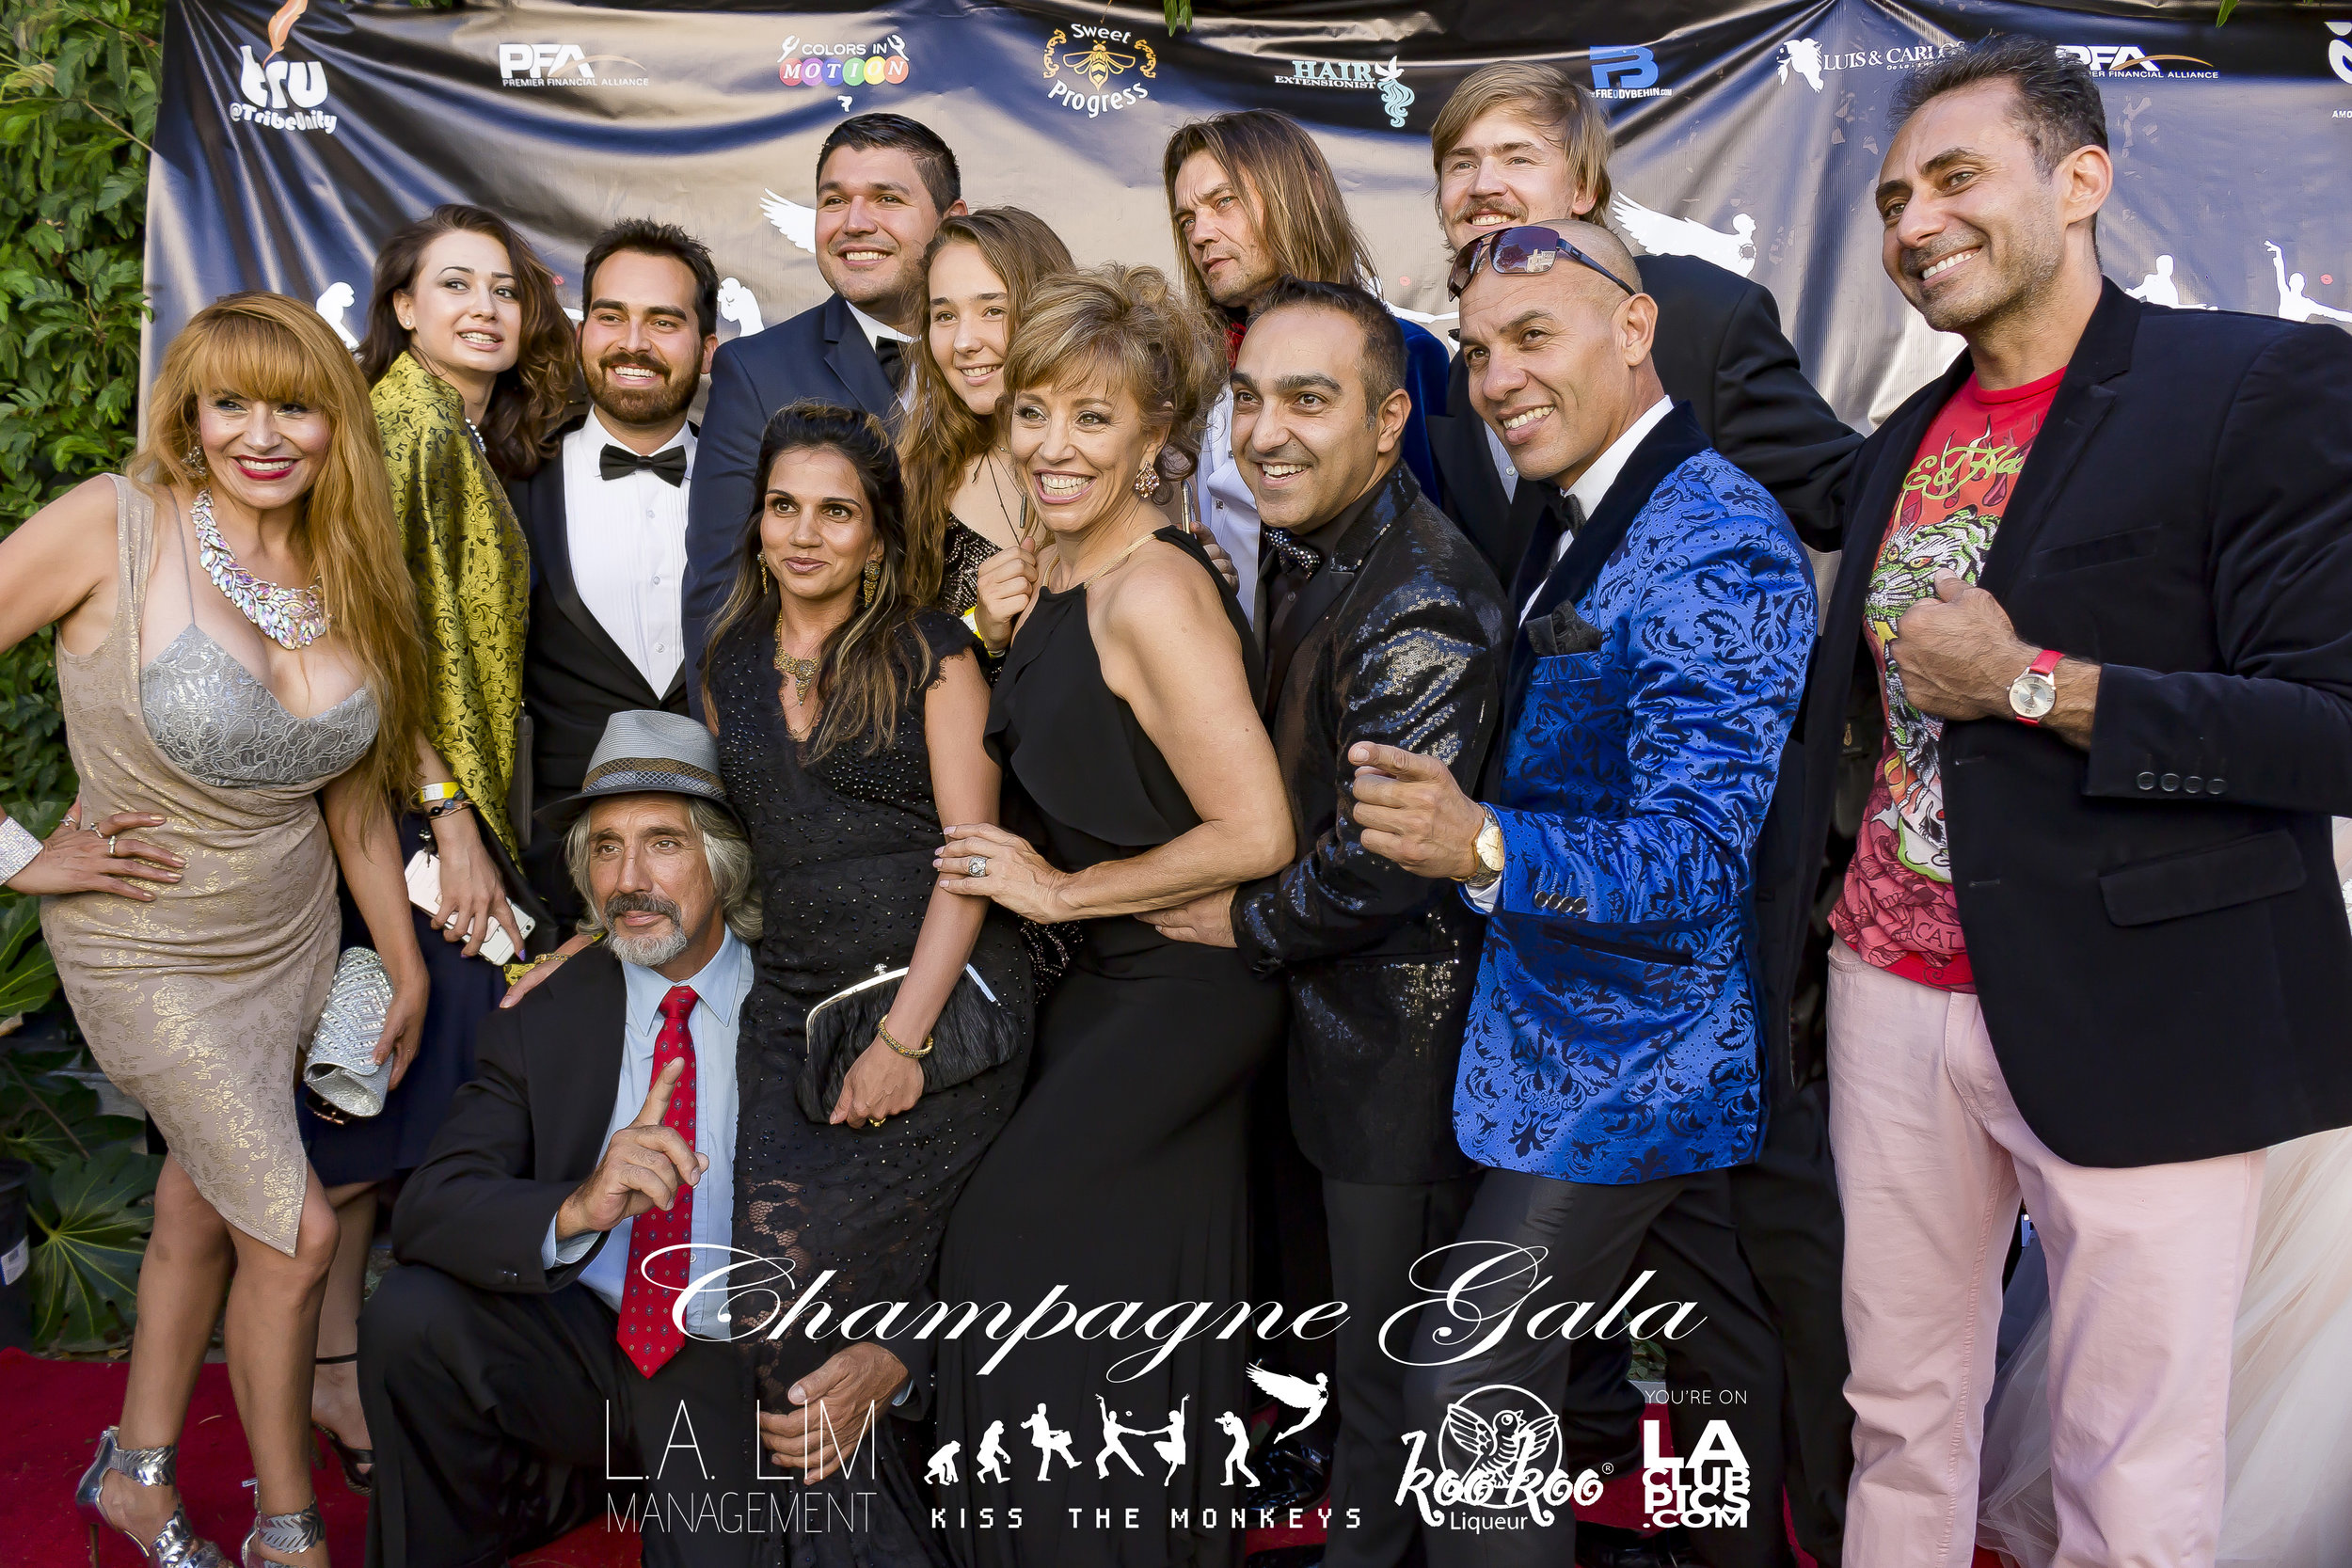 Kiss The Monkeys - Champagne Gala - 07-21-18_36.jpg